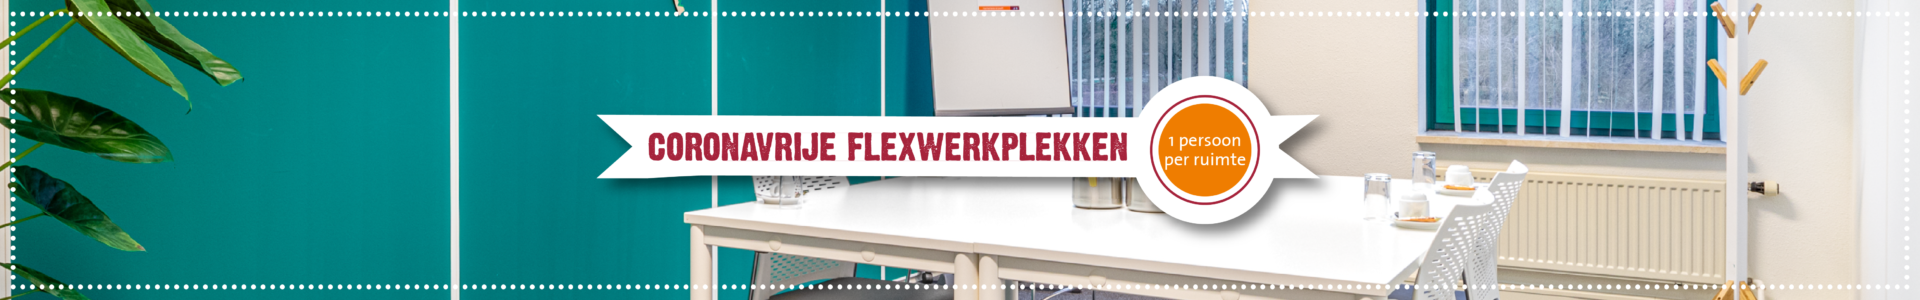 Coronavrije flexwerkplek header website